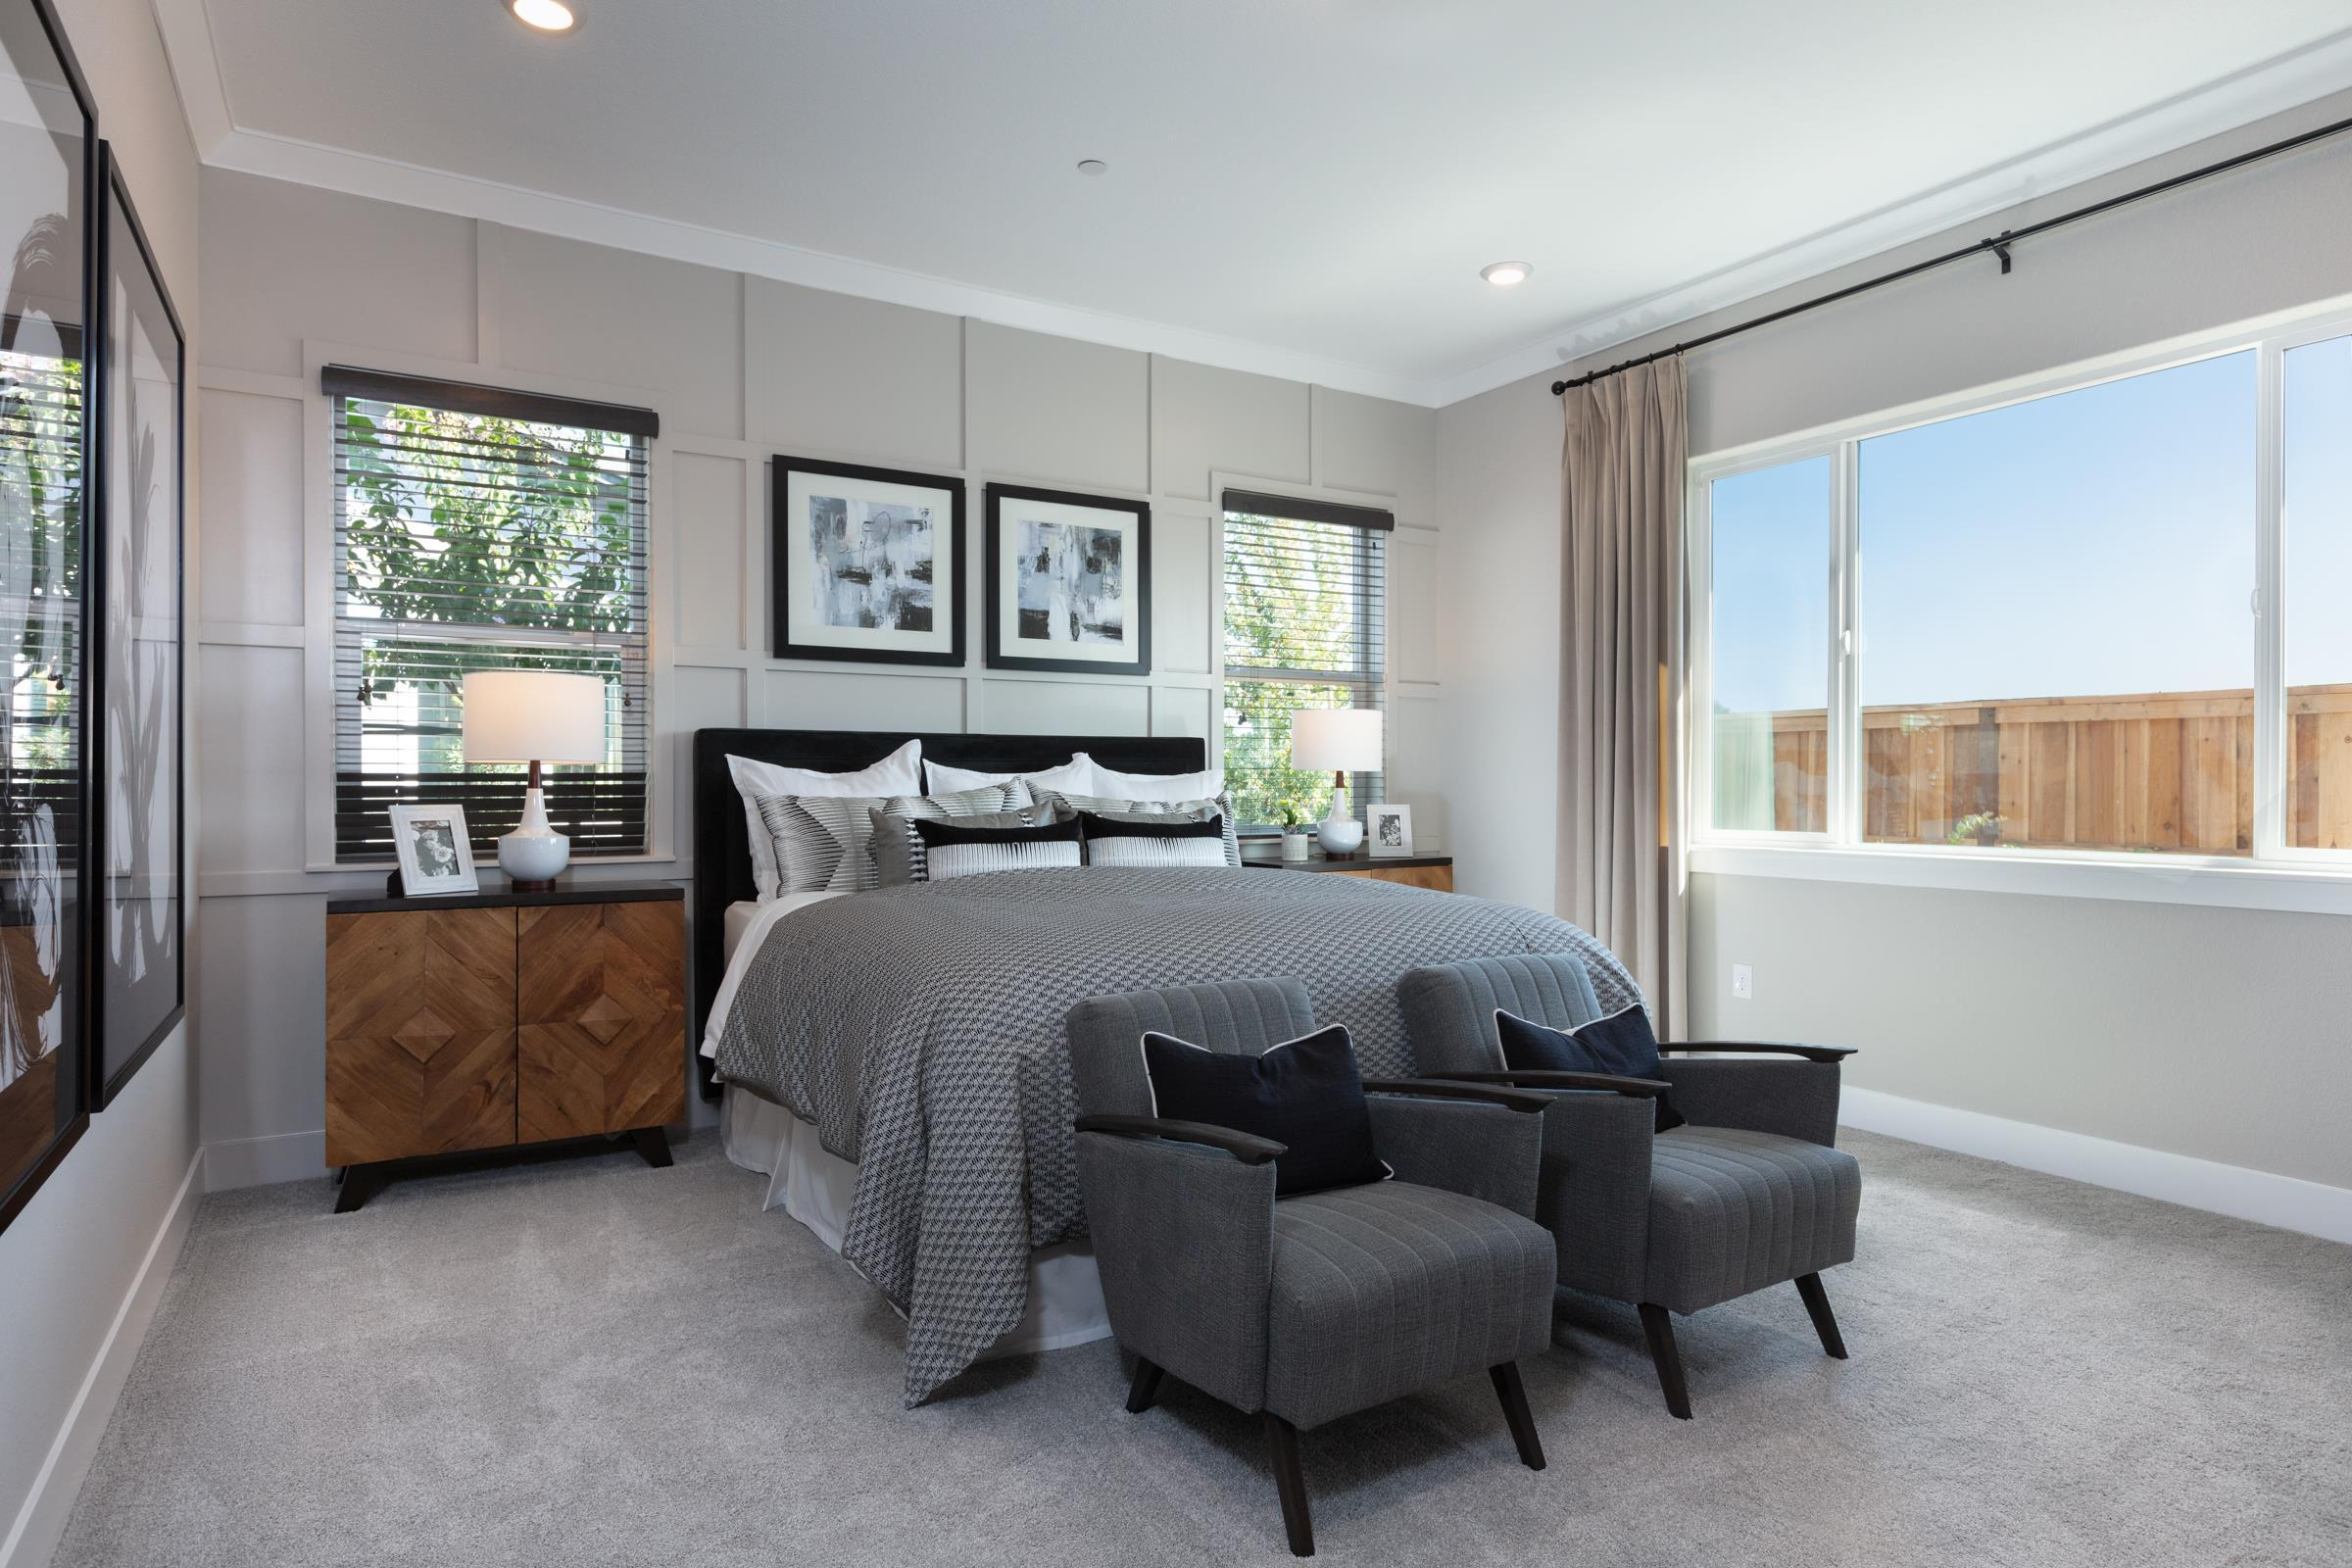 Bedroom featured in the Plan 3 Bungalow By Anthem United Homes Inc in Stockton-Lodi, CA